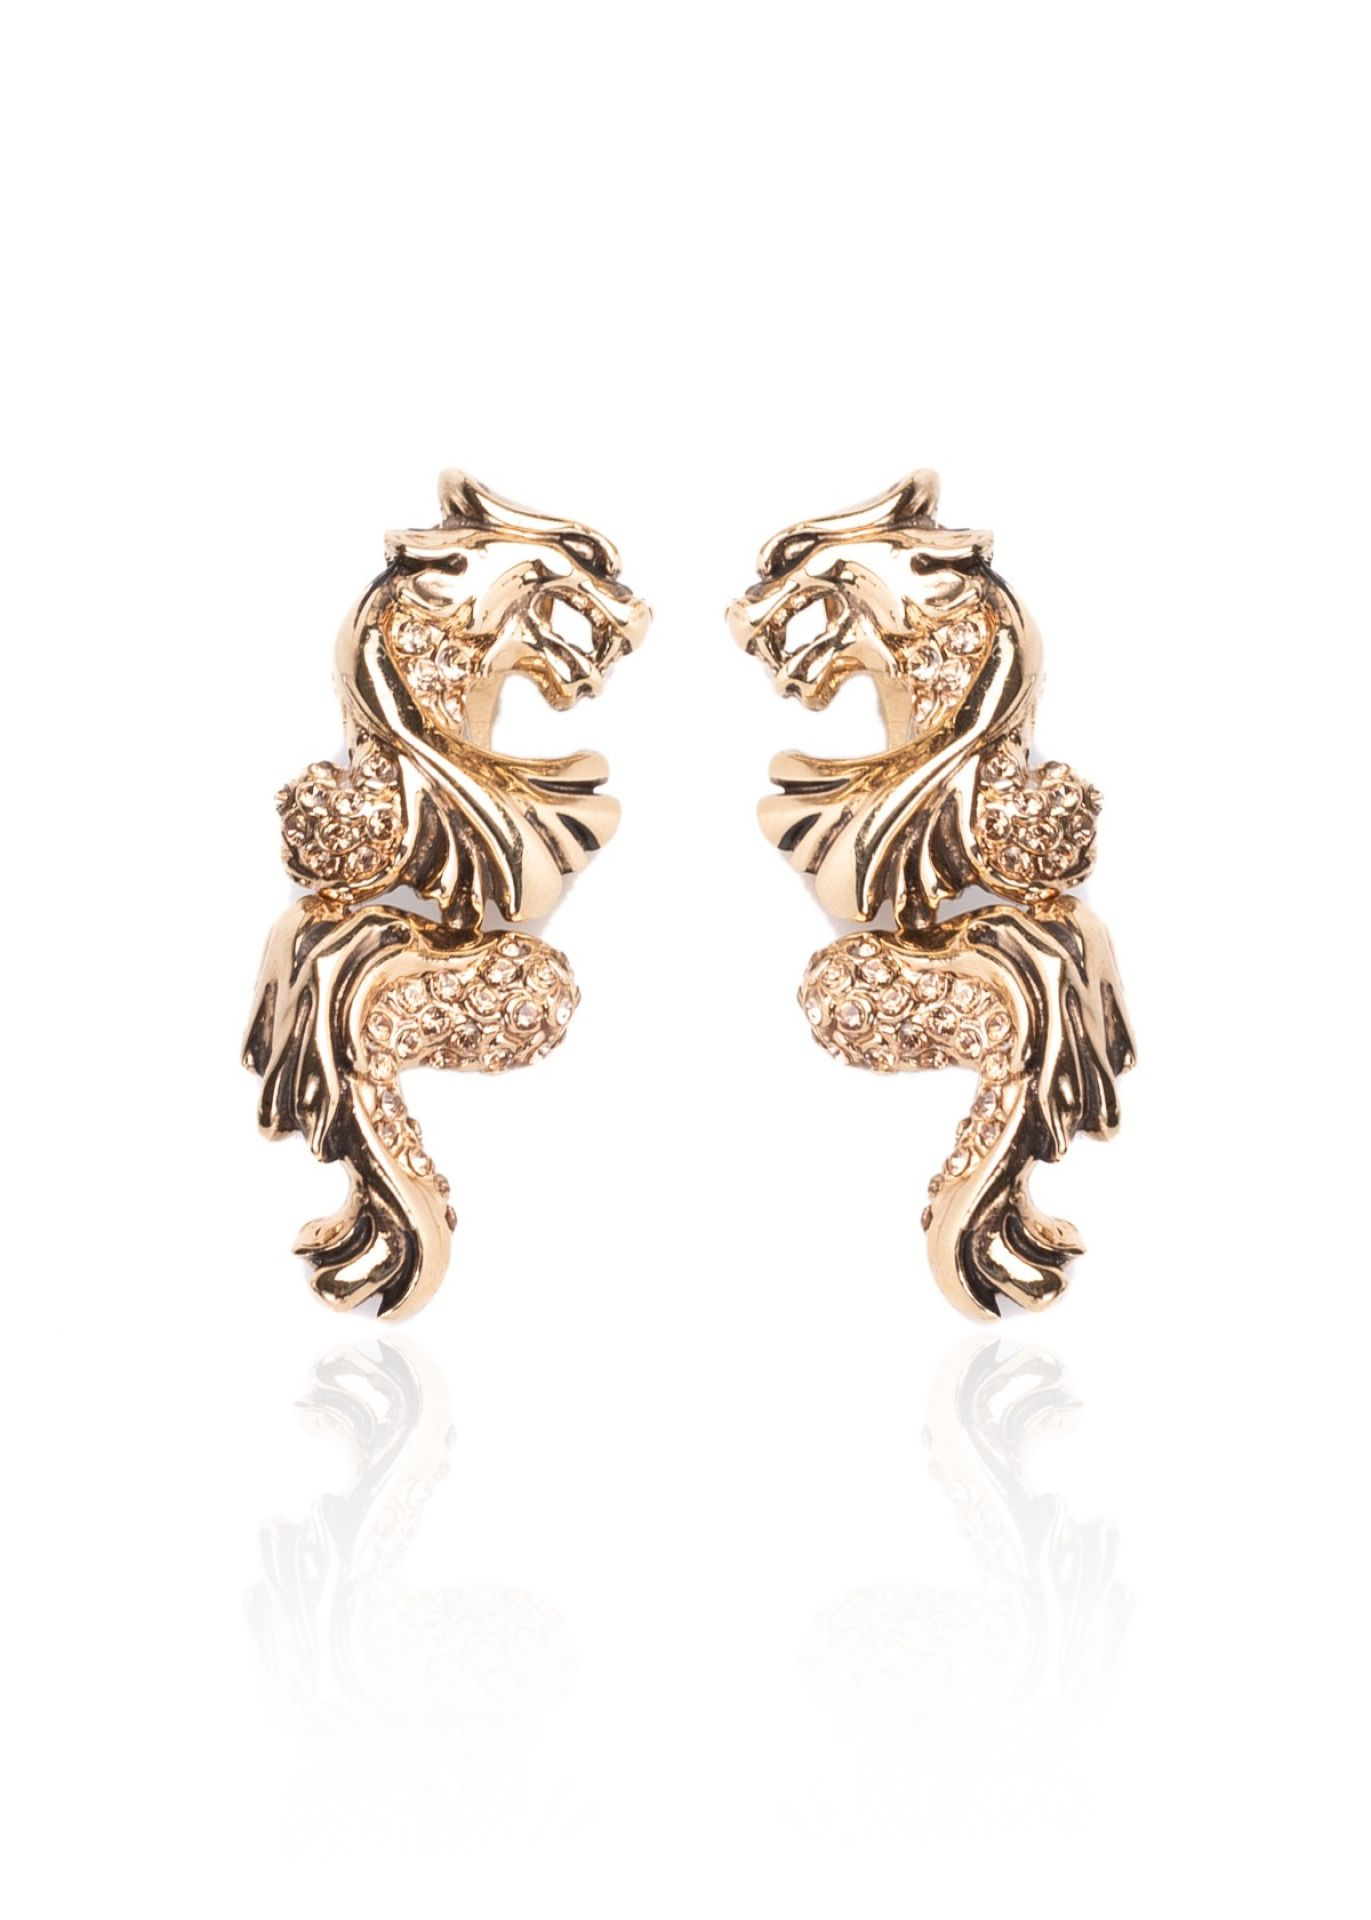 ROBERTO CAVALLI GOLD TIGER SWAROVSKI CLIP ON EARRINGS